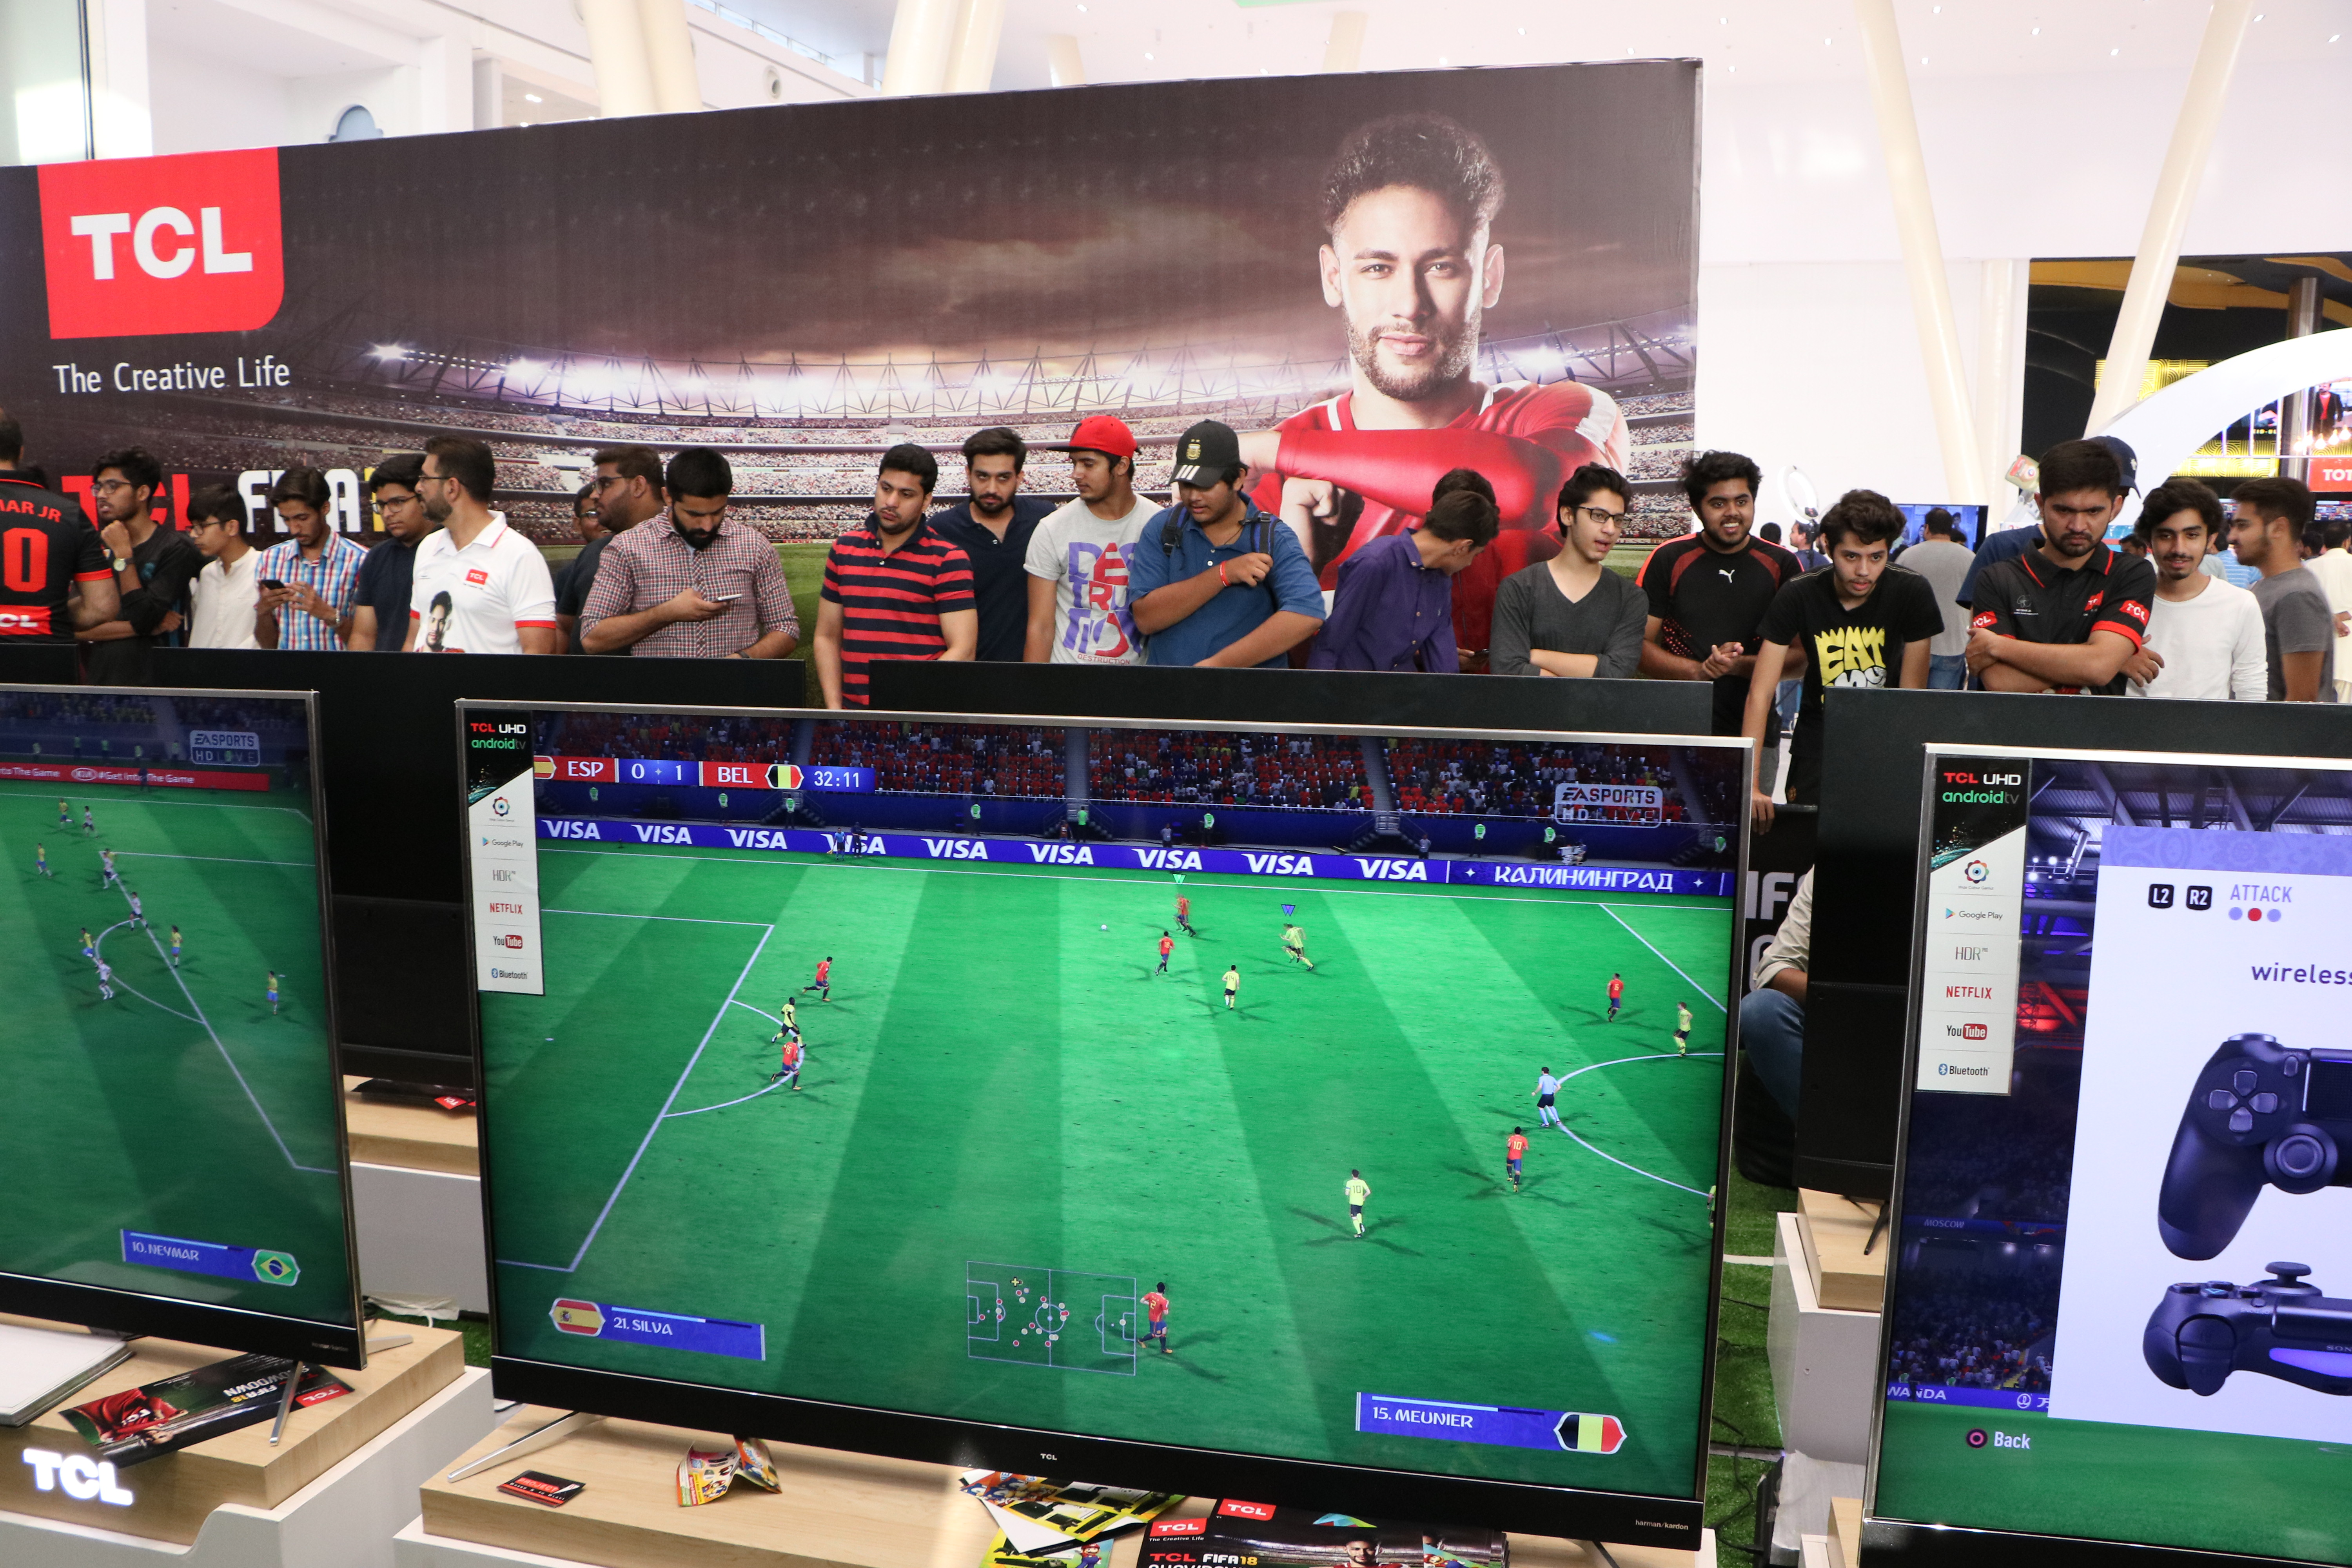 TCL Holds Biggest FIFA Gaming Showdown Event in Lahore